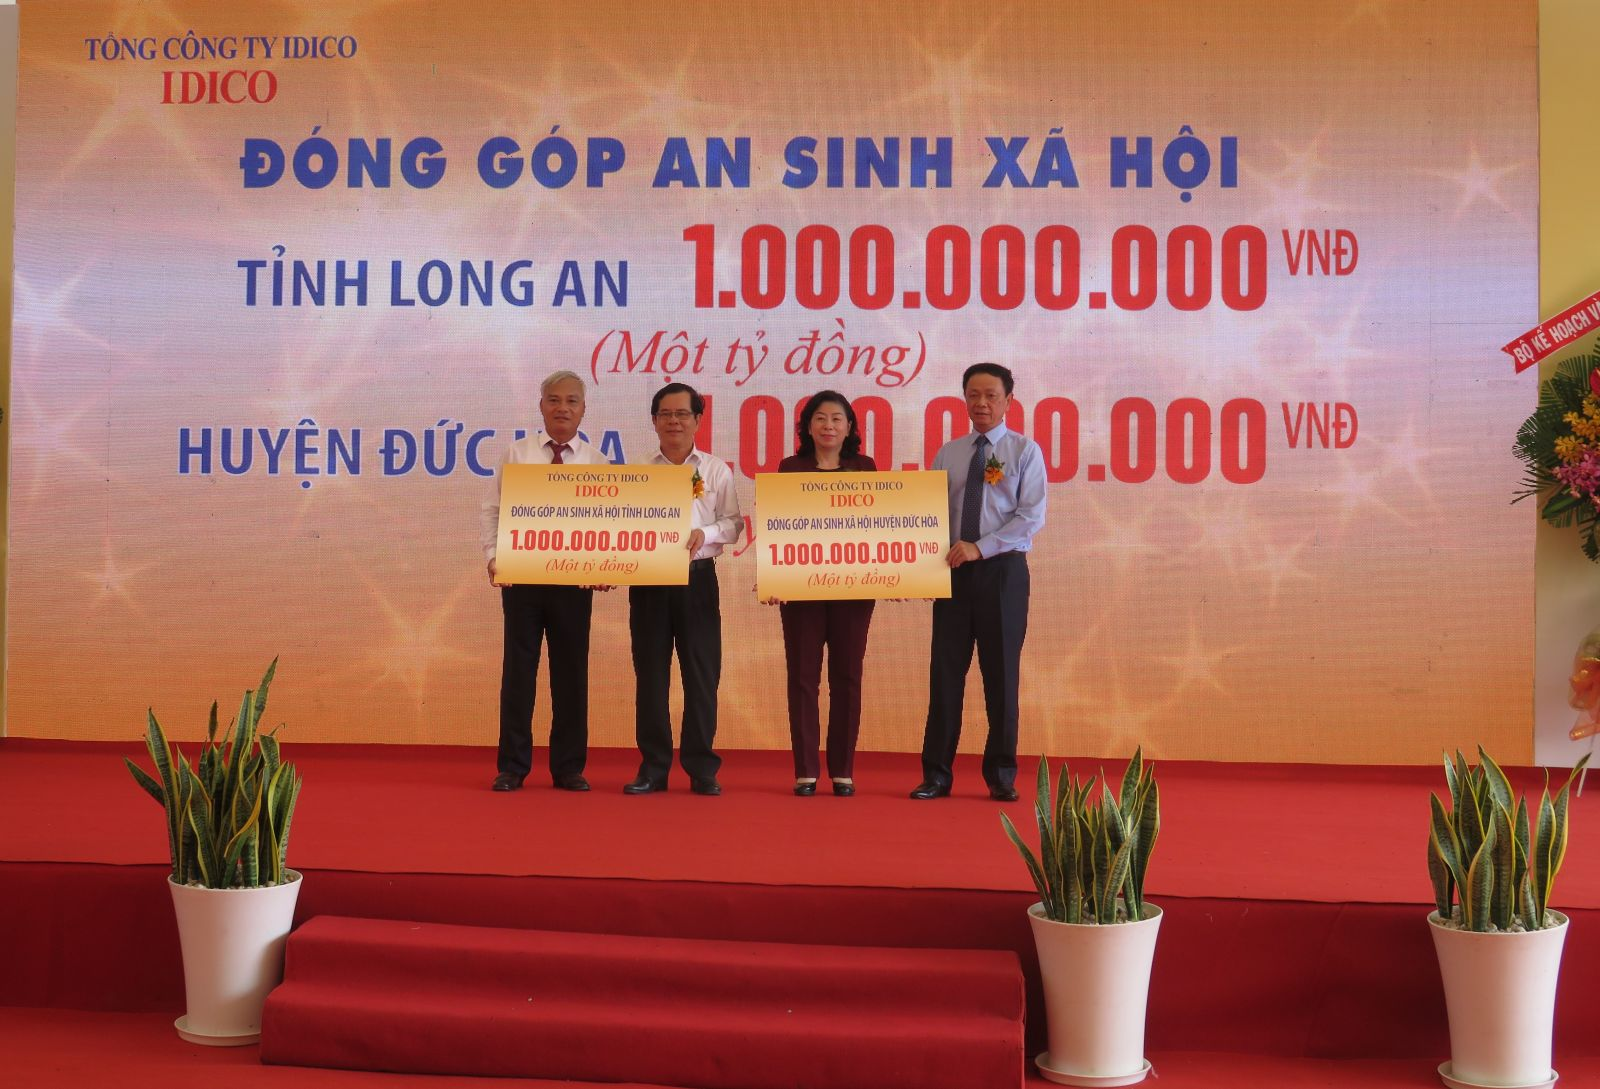 Infrastructure investors award 1 billion VND to social security fund of Long An province, 1 billion VND to Duc Hoa district